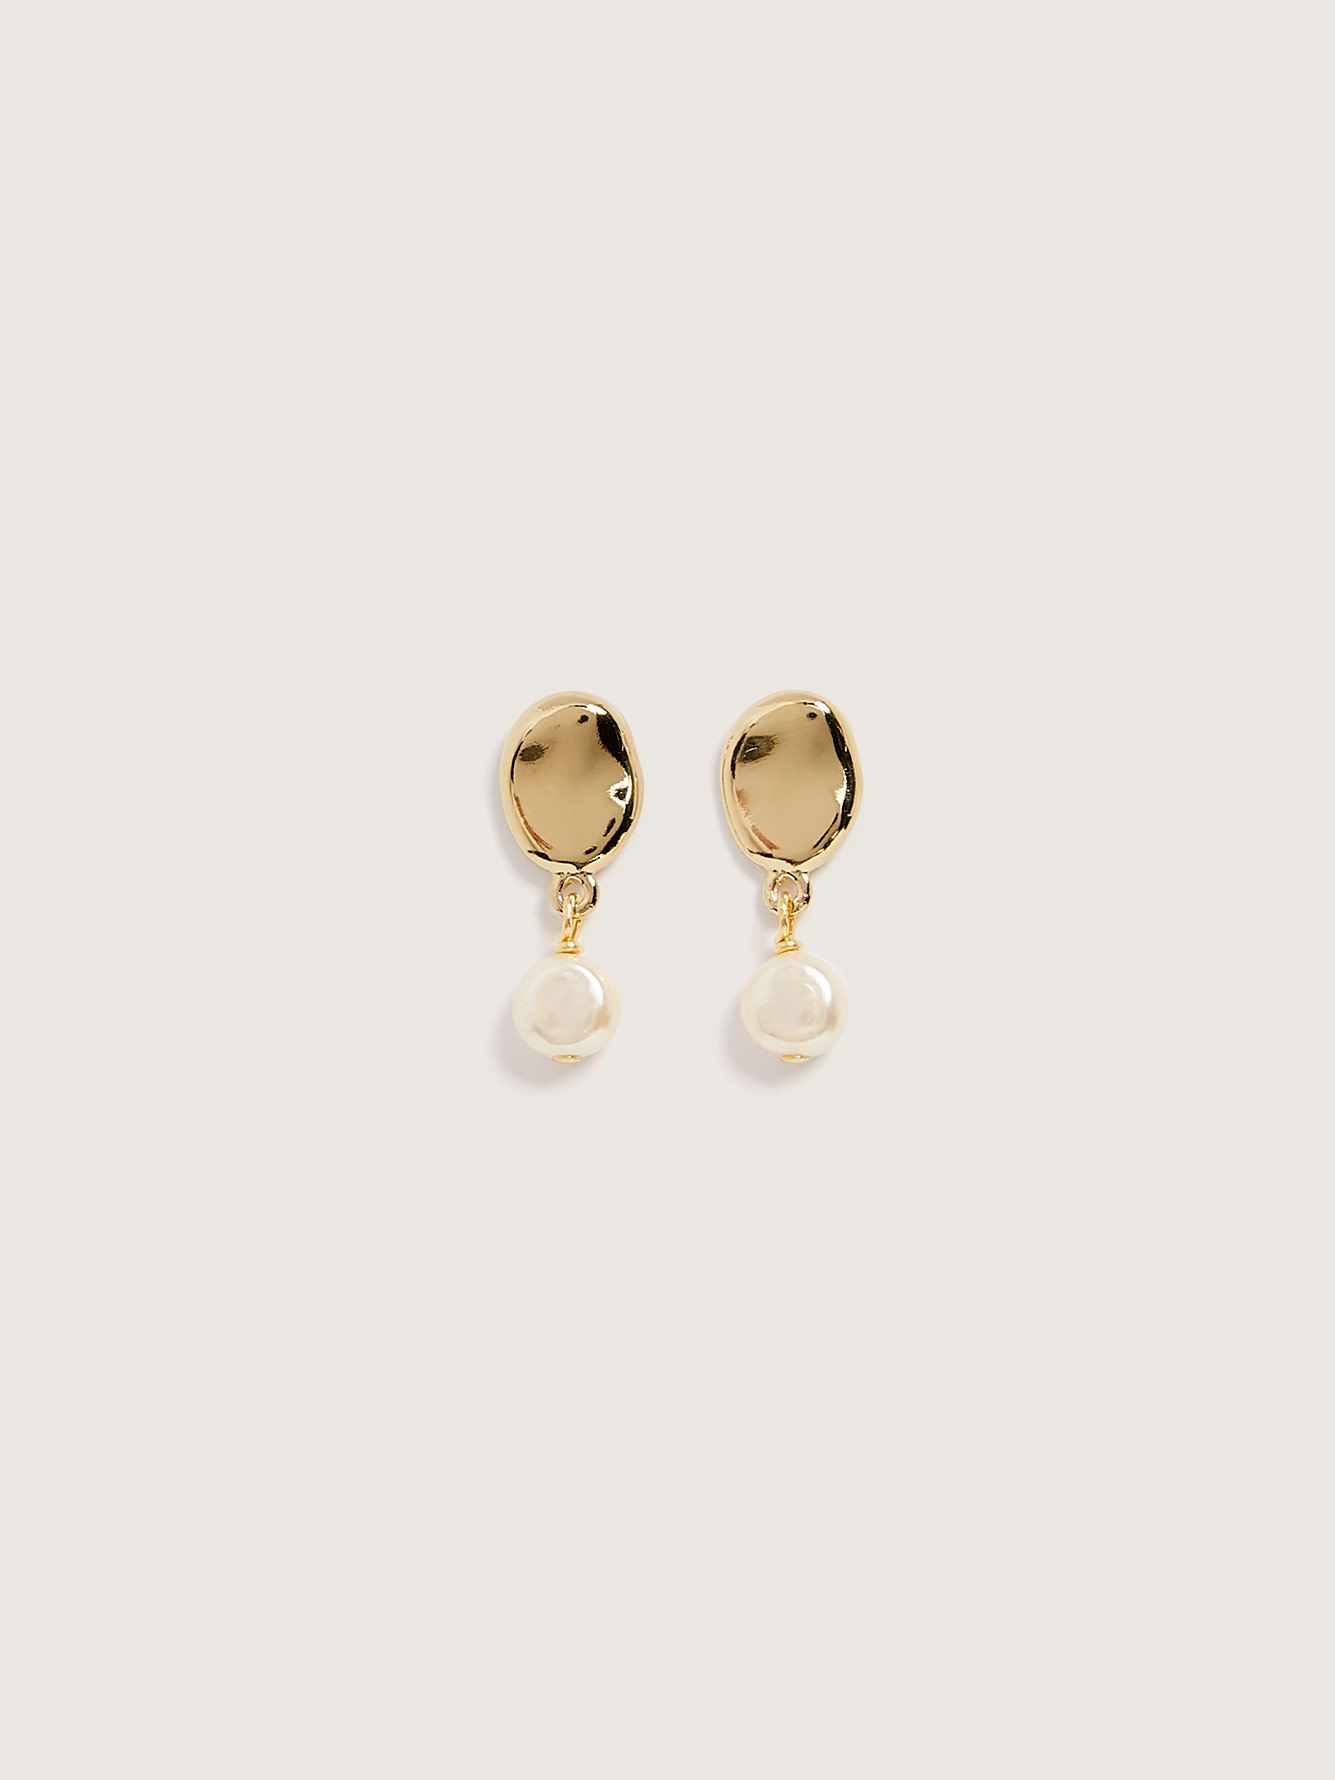 14K Plated Capri Pearl Stud Earrings - Biko